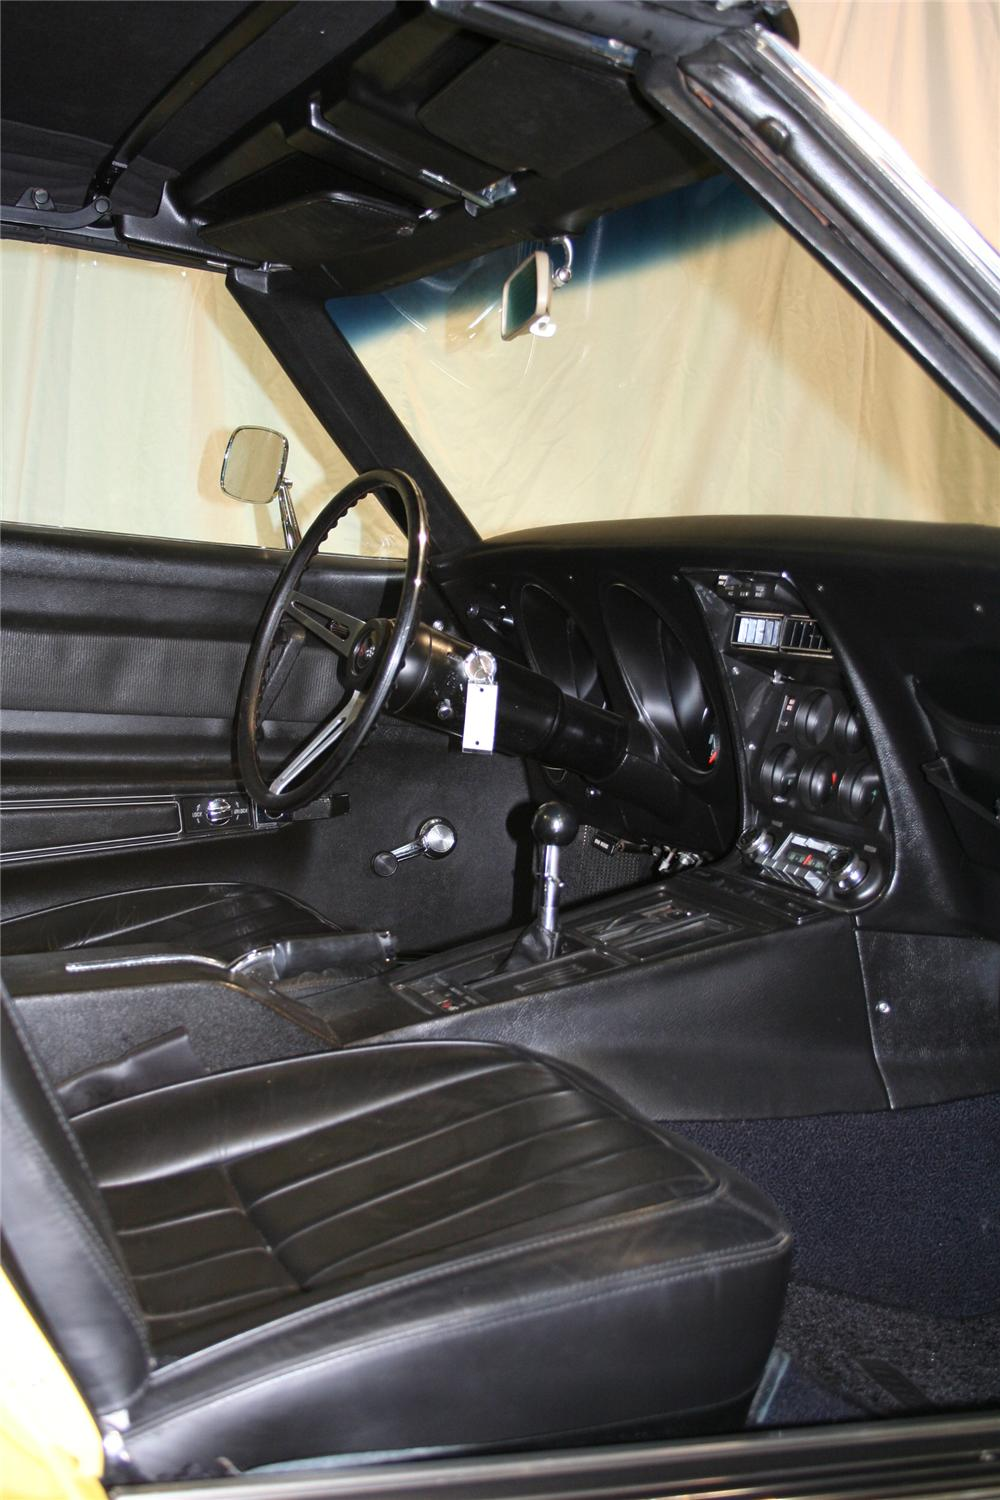 1969 CHEVROLET CORVETTE CONVERTIBLE - Interior - 81897